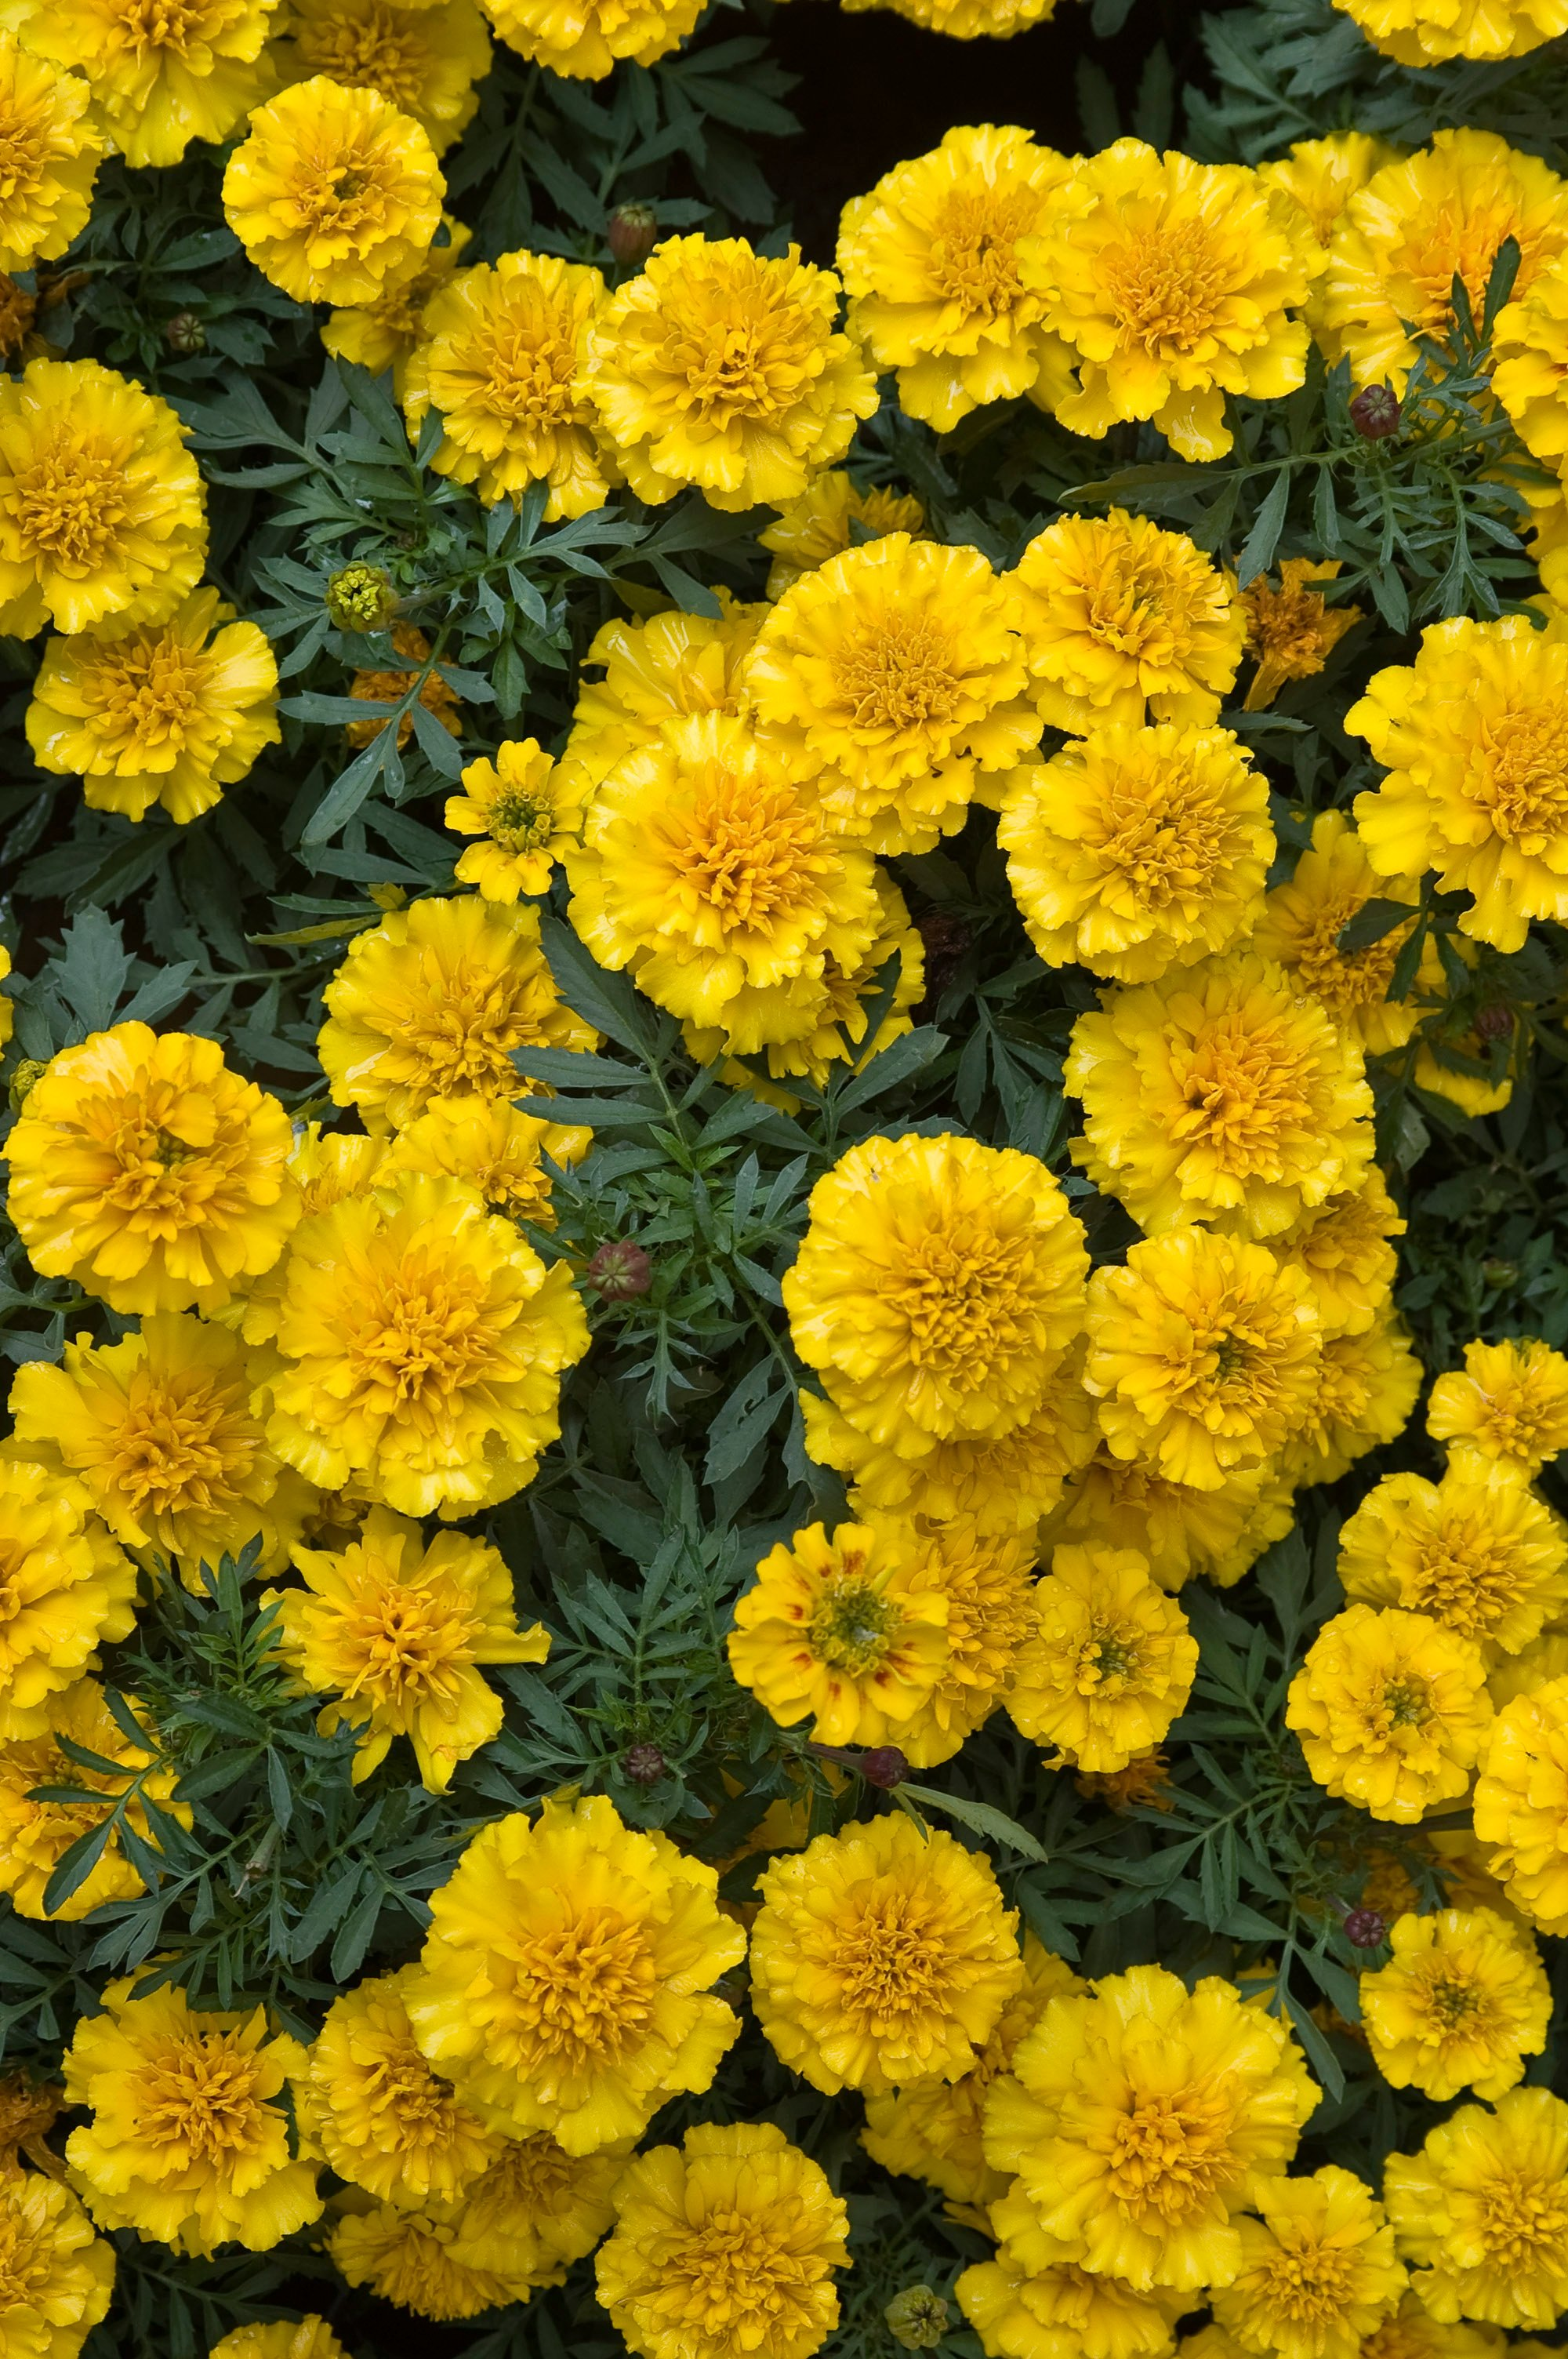 All about Marigolds